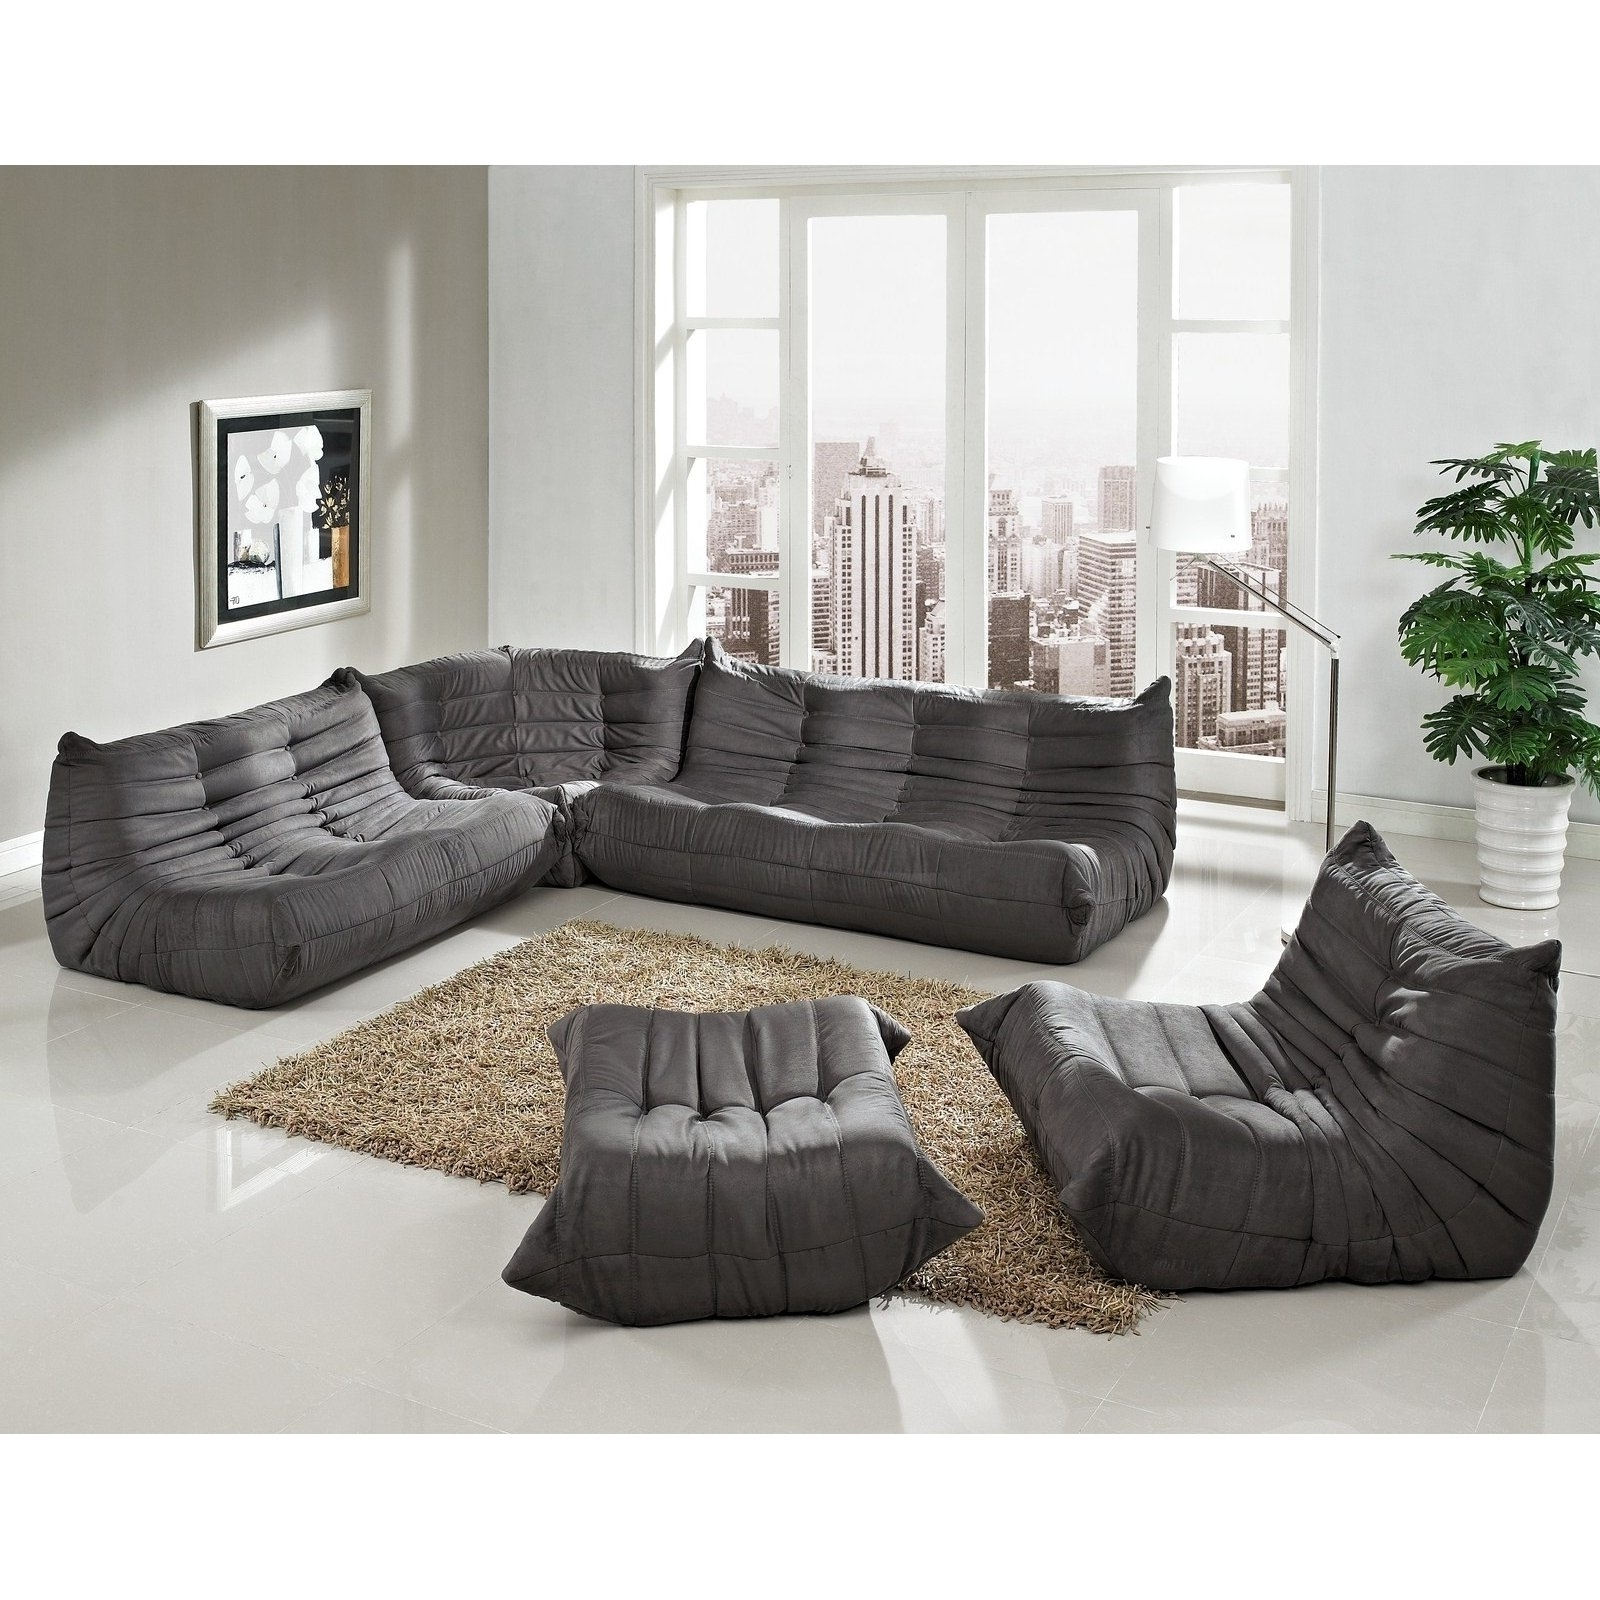 Trendy Unique Sectional Sofas In Unique Low Profile Sectional Sofa 26 For Sofa Design Ideas With Low (View 8 of 15)